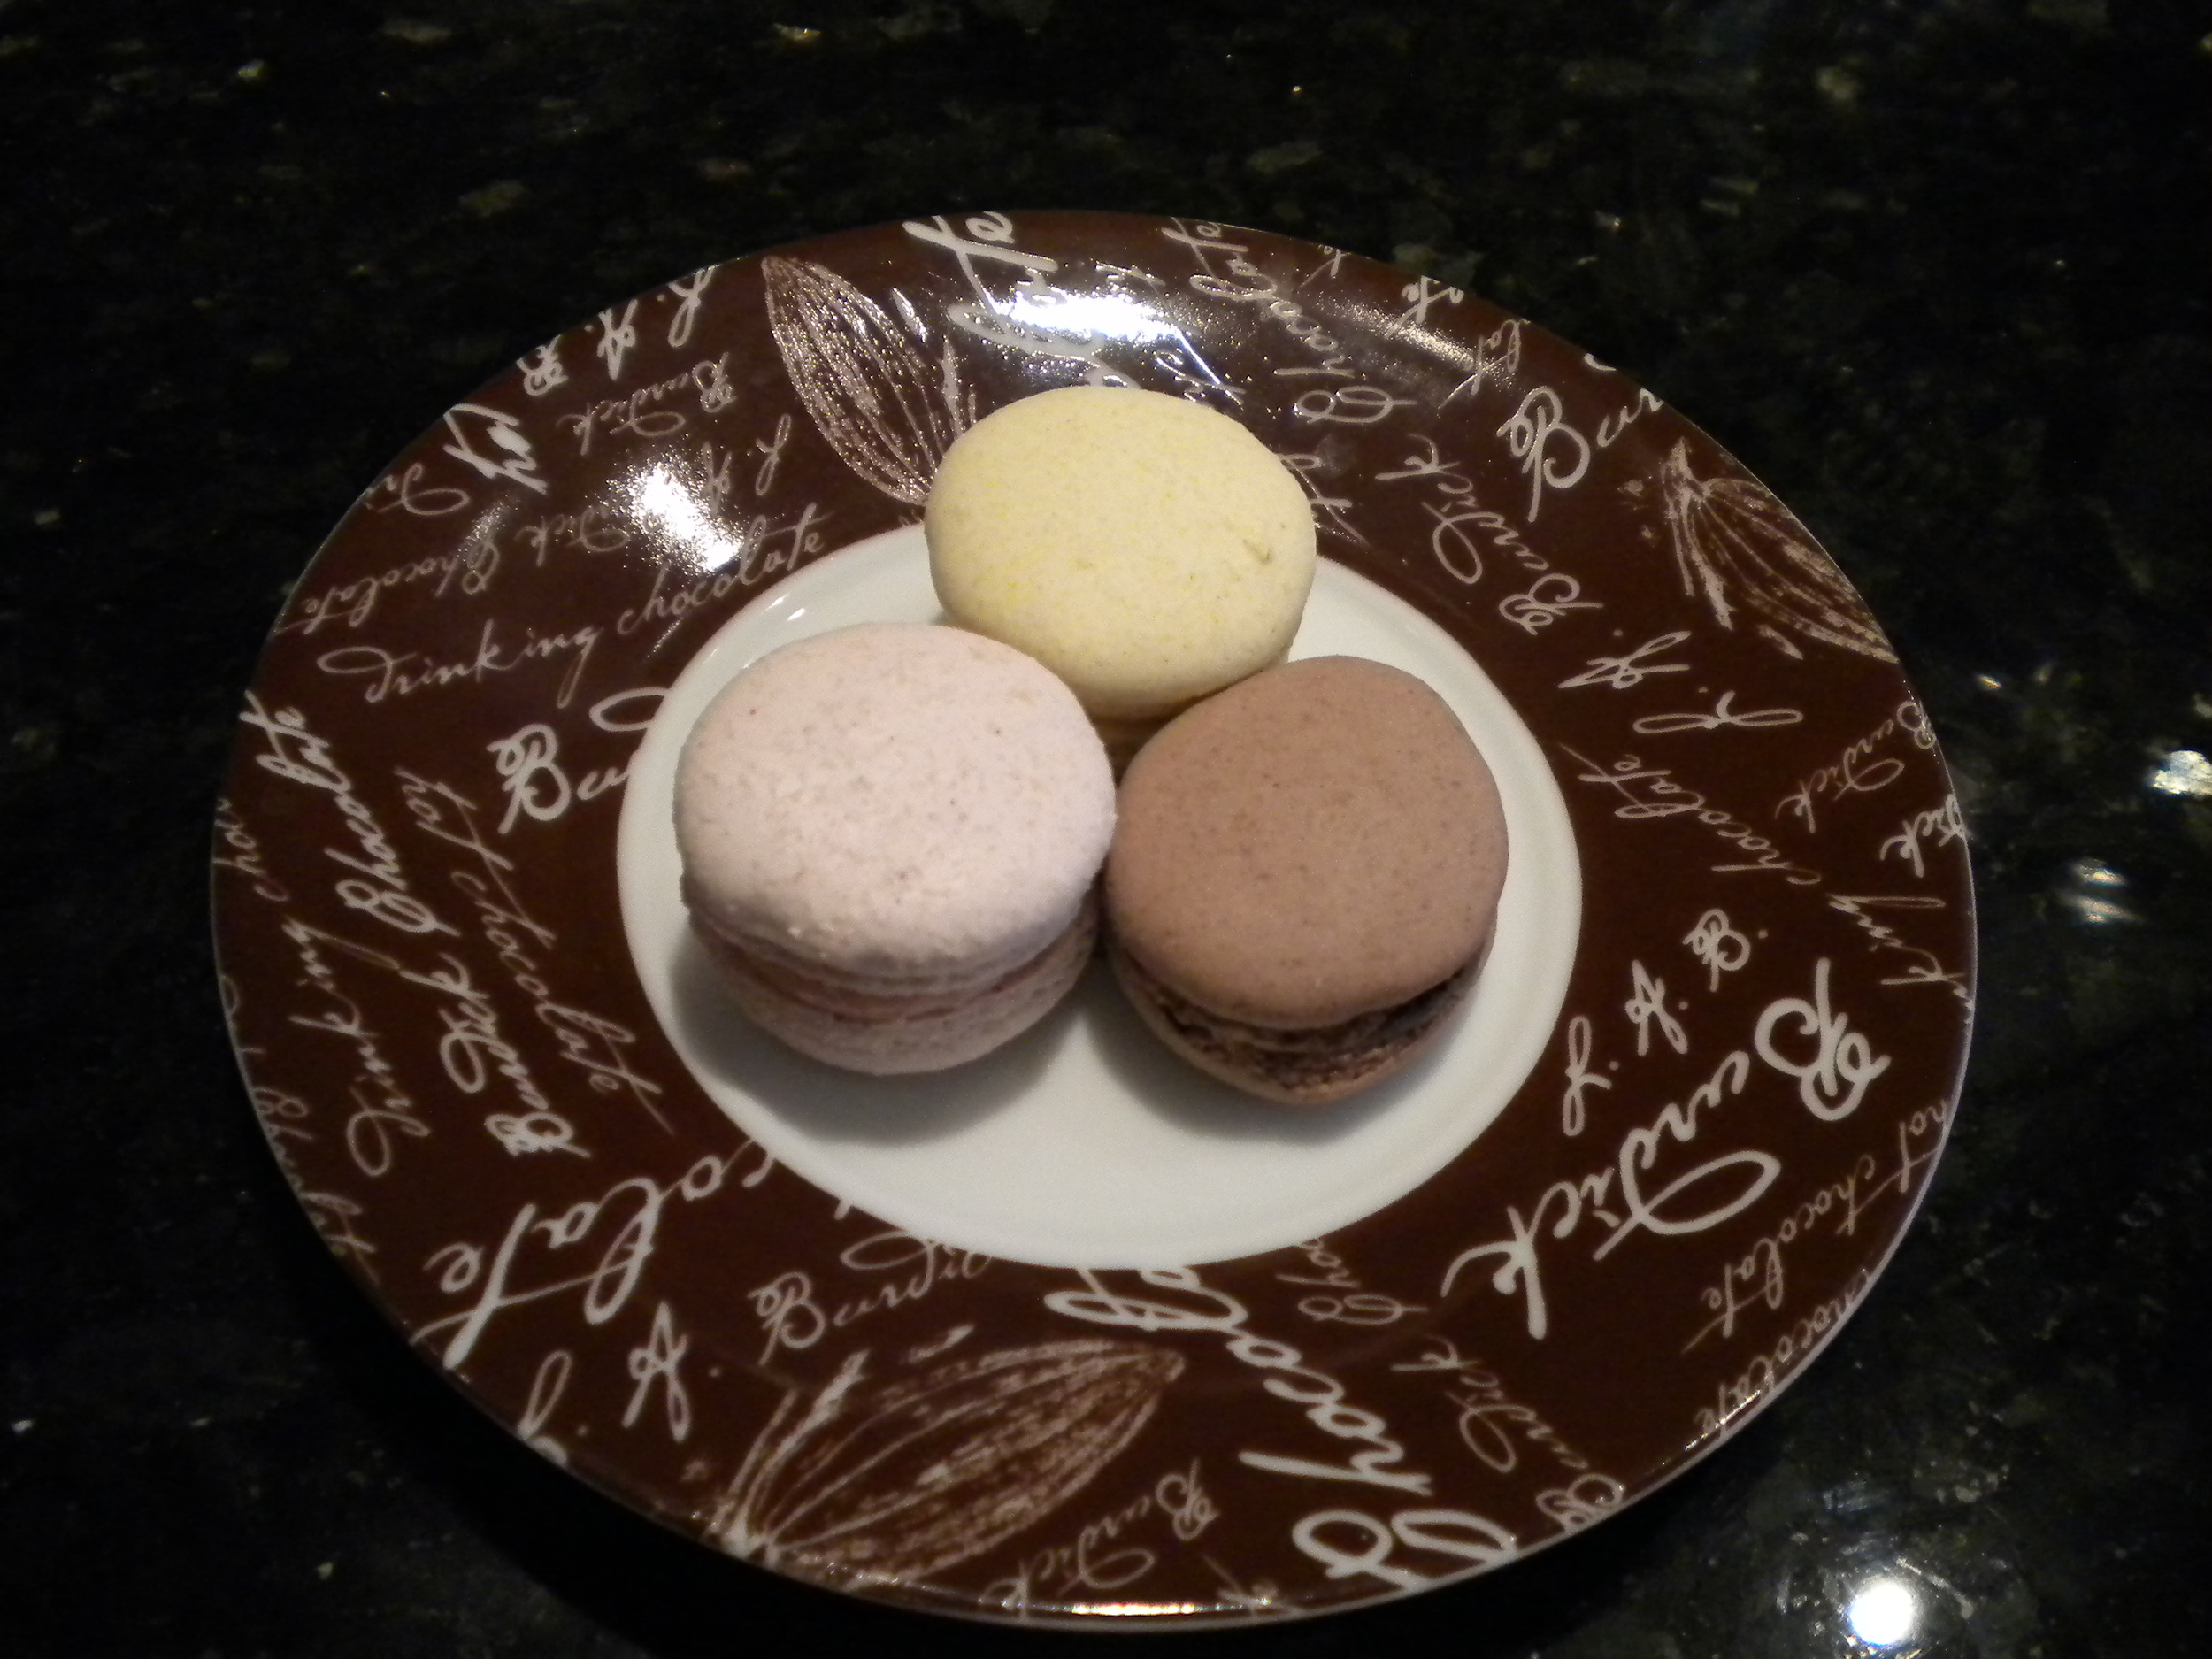 Raspberry, Ginger, and Chocolate macarons. Tiny things aren't they?